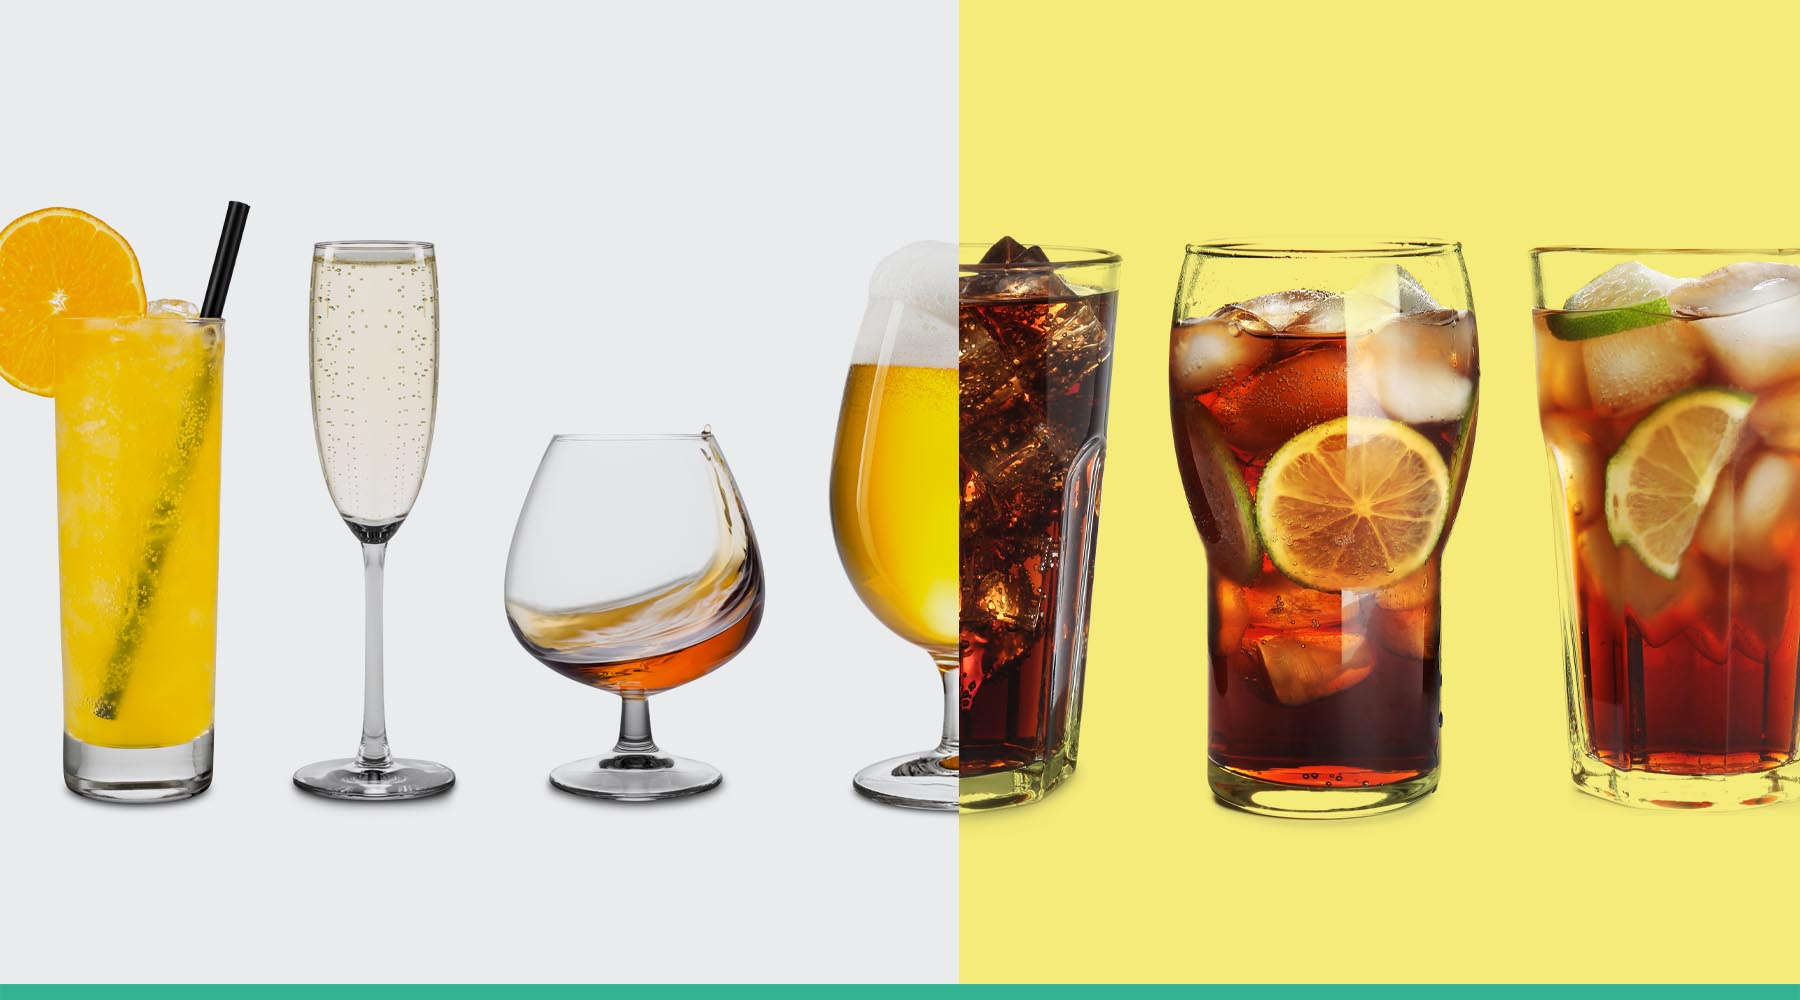 Alcohol Vs. Soft Drinks Which is Worse: The Complete Comparison